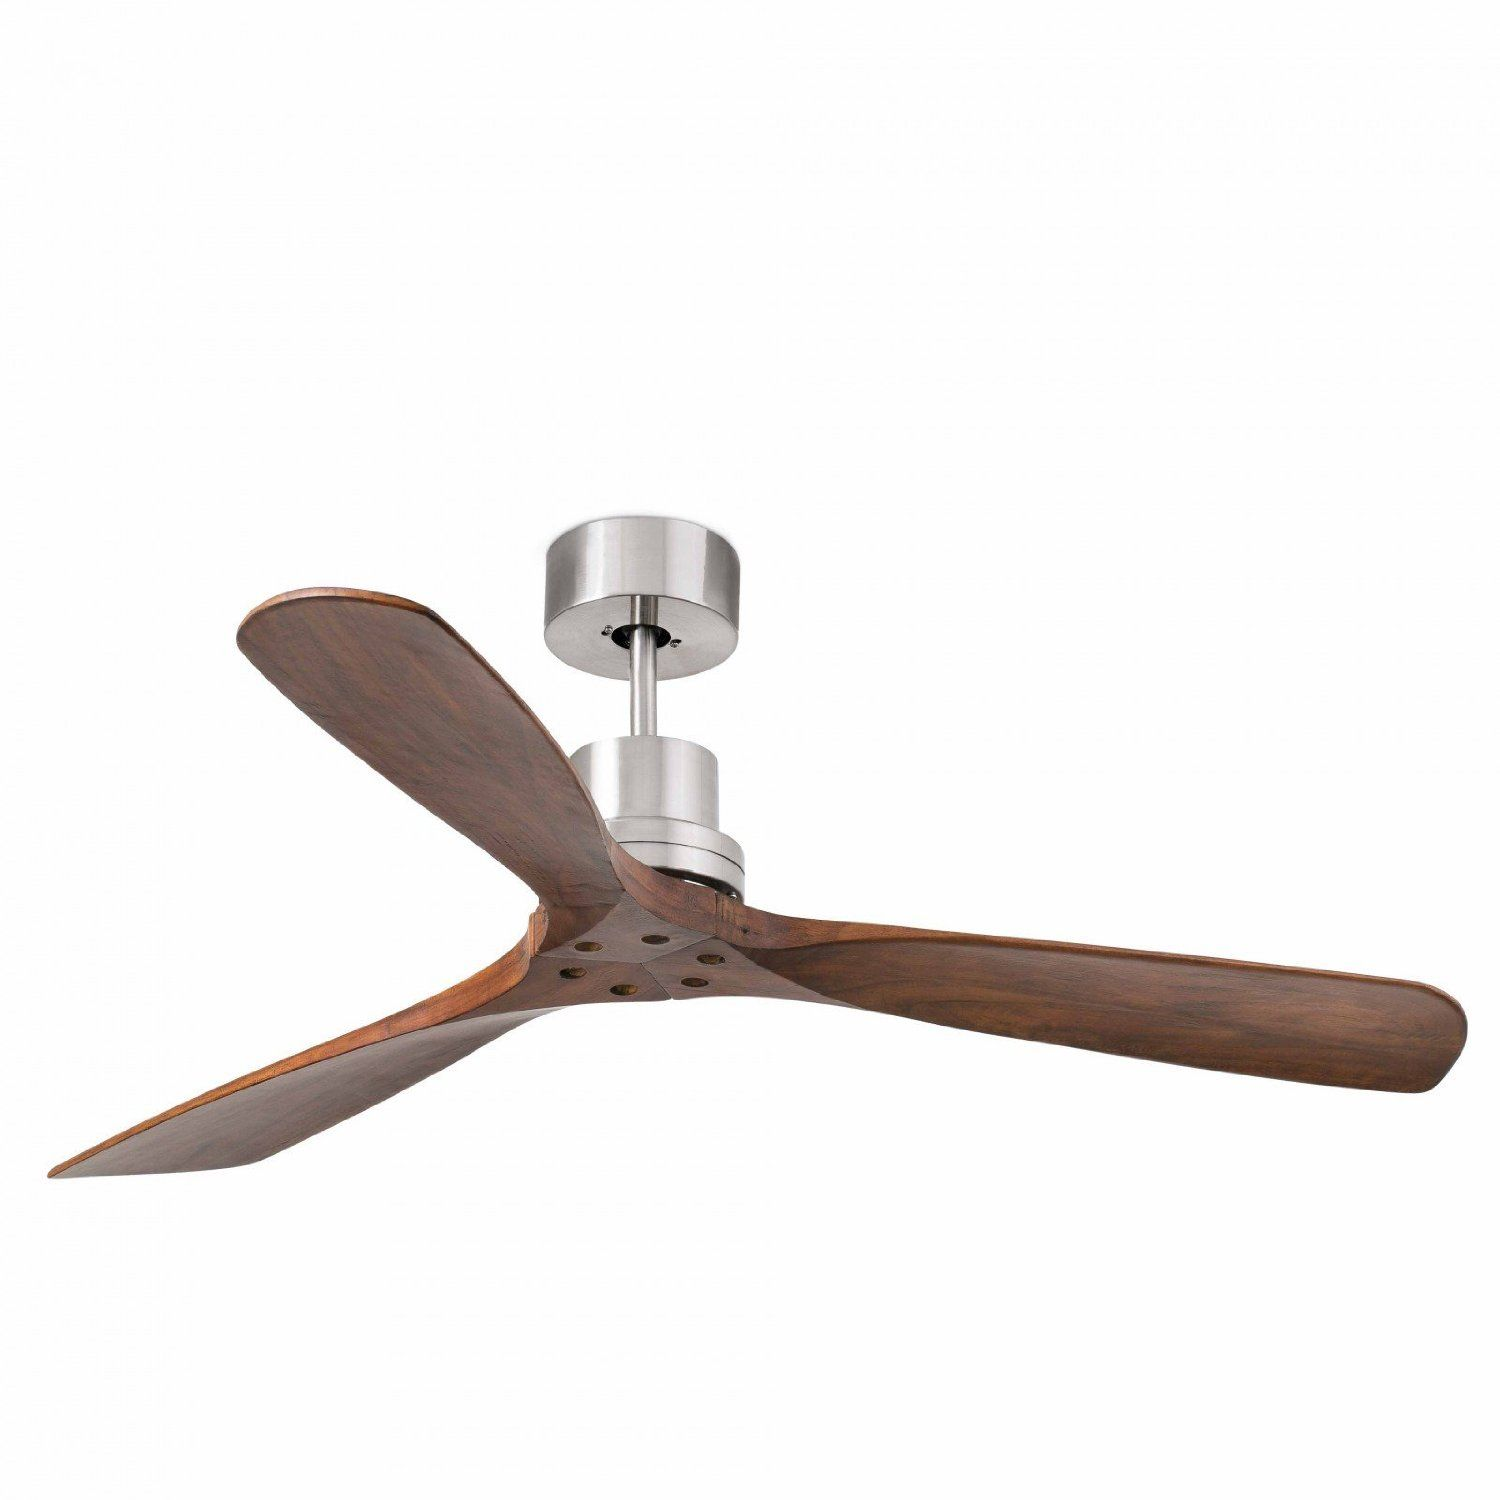 Ceiling Fan Lorefar Lantau Faro 33370 Matte Nickel With 3 Dark